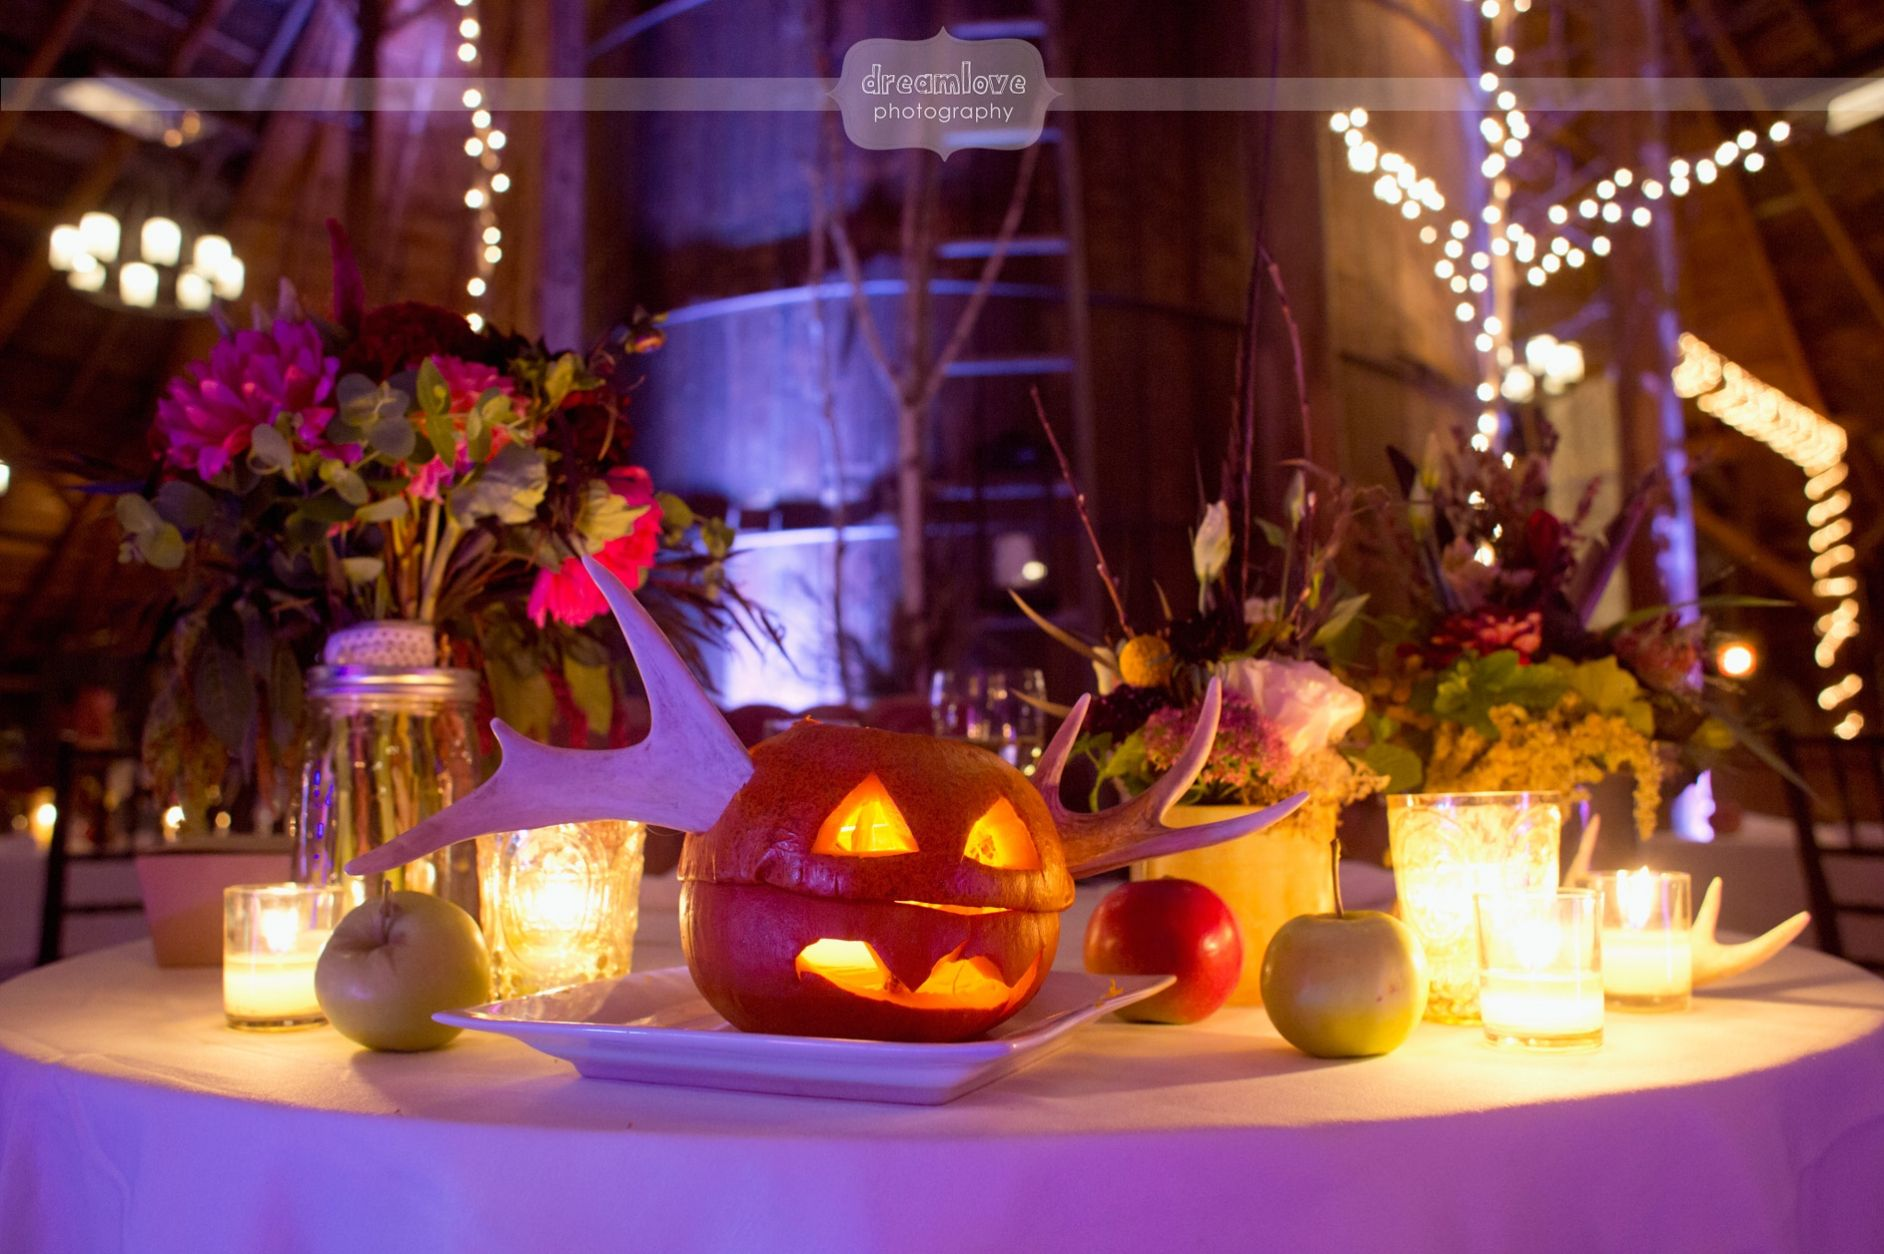 Decoration images for wedding  Love this Halloween style table decoration from a wedding at the